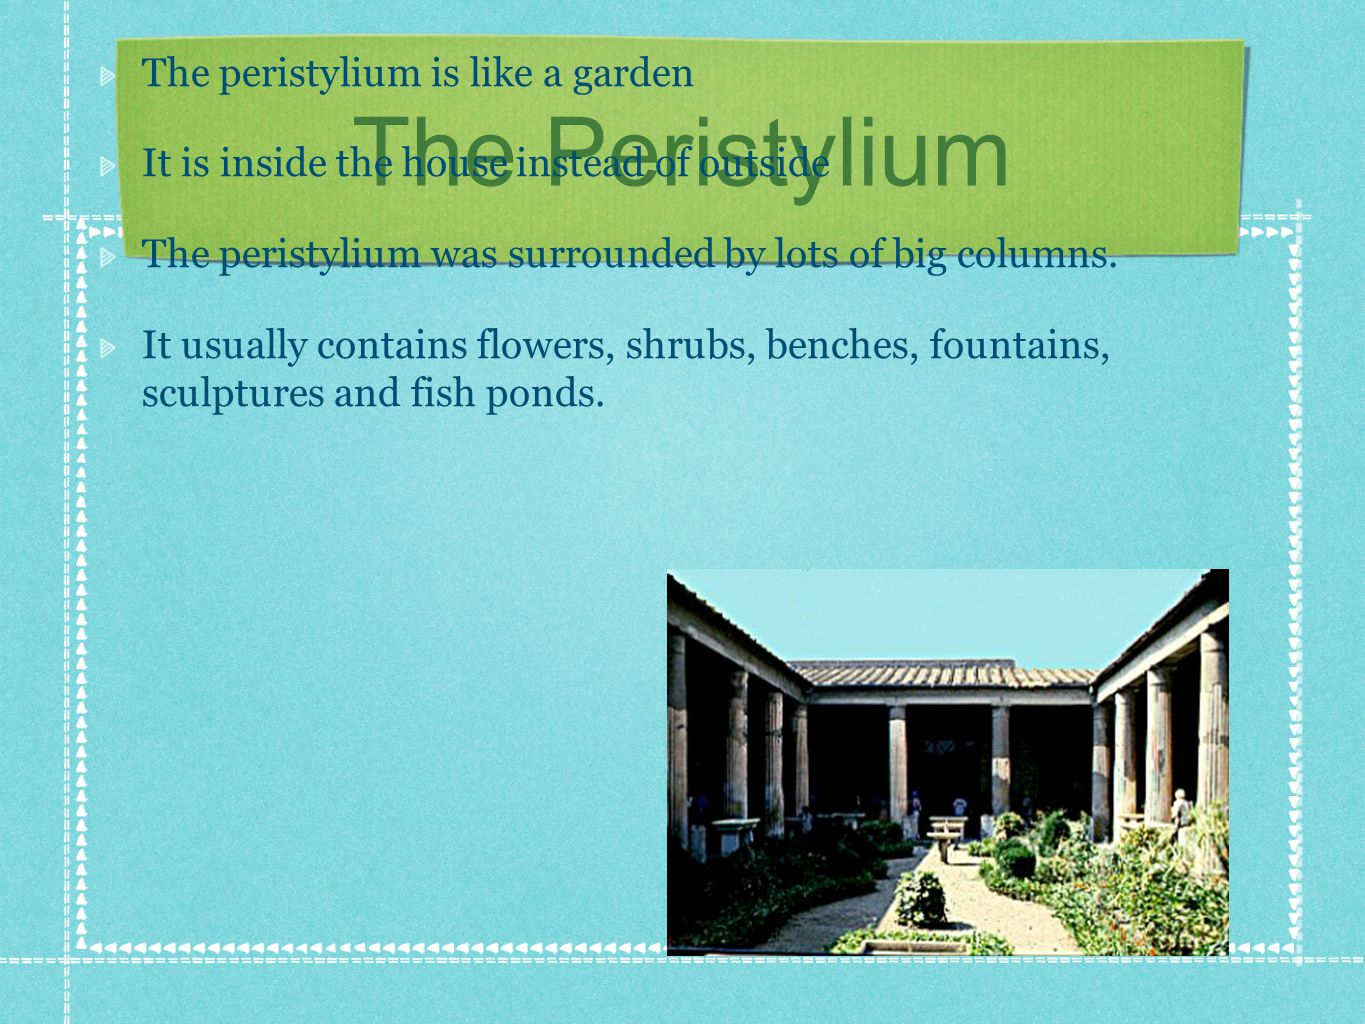 The Peristylium The peristylium is like a garden